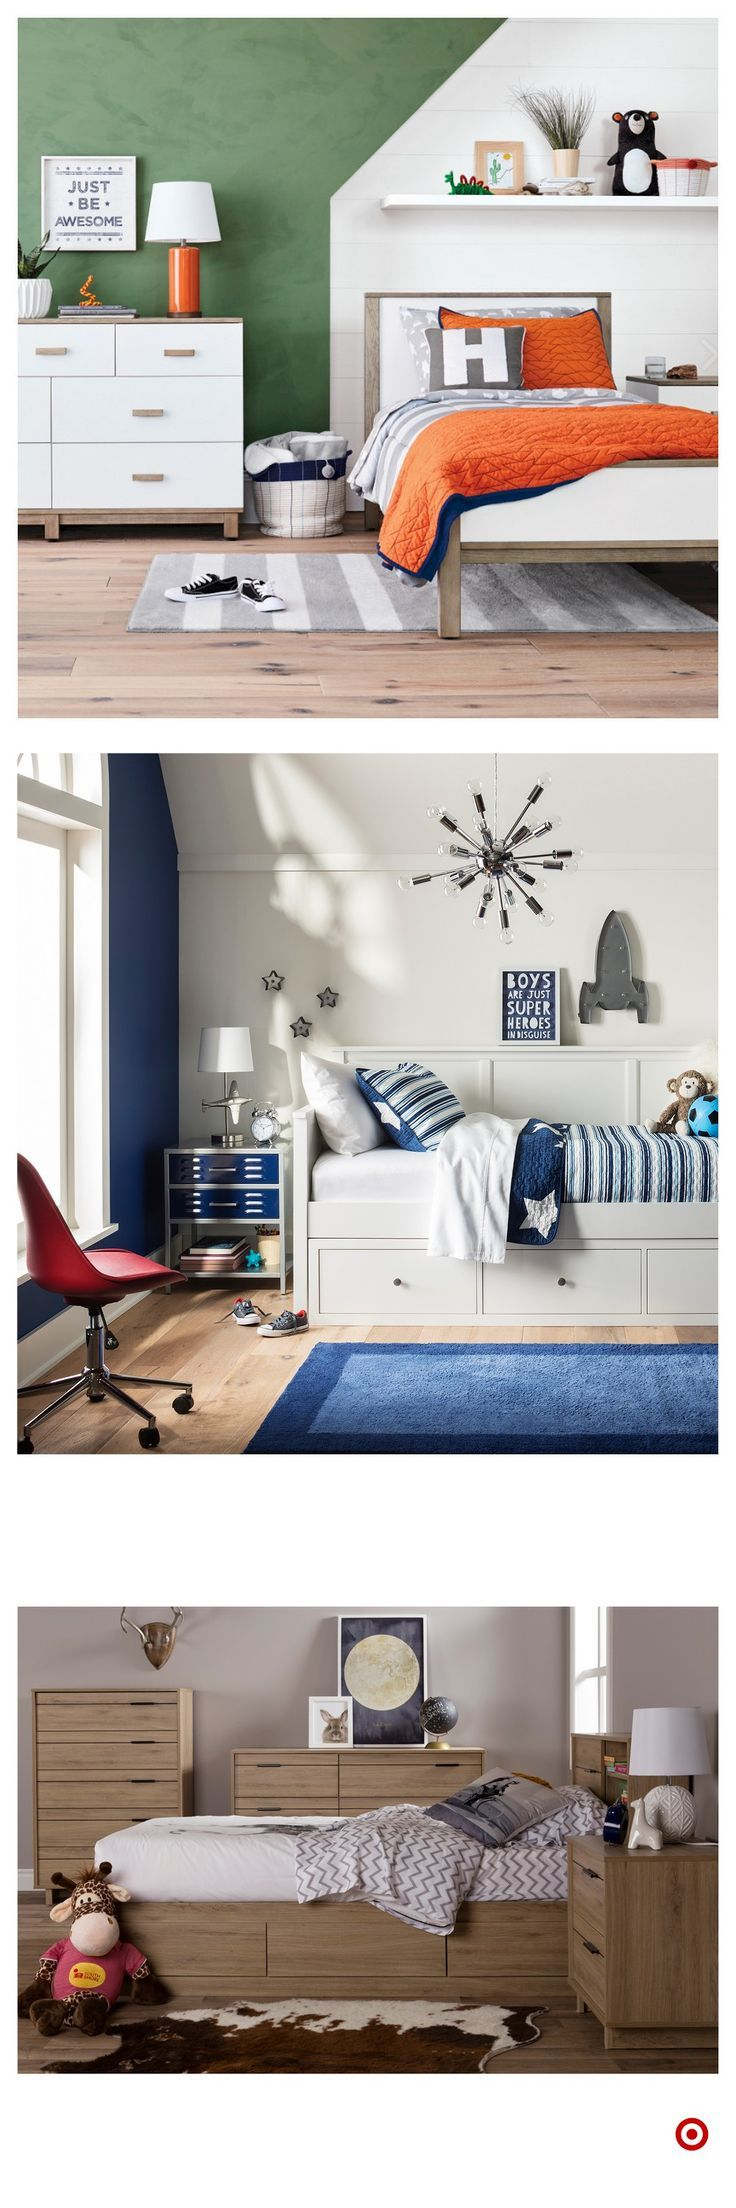 Shop Target For Kids Nightstand You Will Love At Great Low Prices Free Shipping On Orders Of 35 Or Free Same Day Pick Up In Stor Boy Room Room Big Kids Room